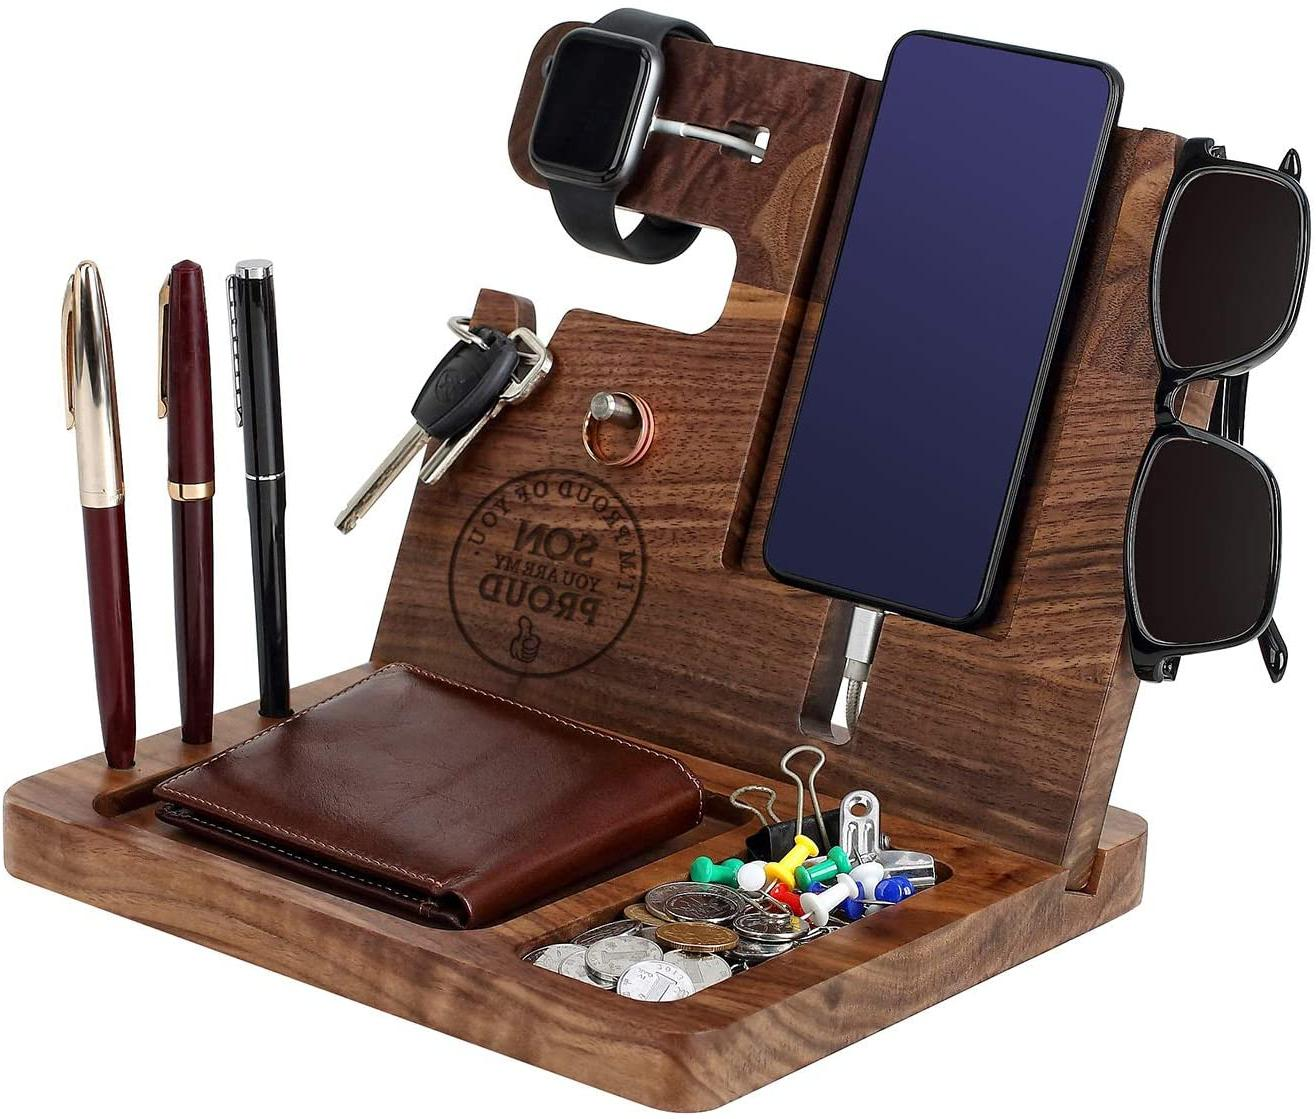 birthday gift for son wood phone docking